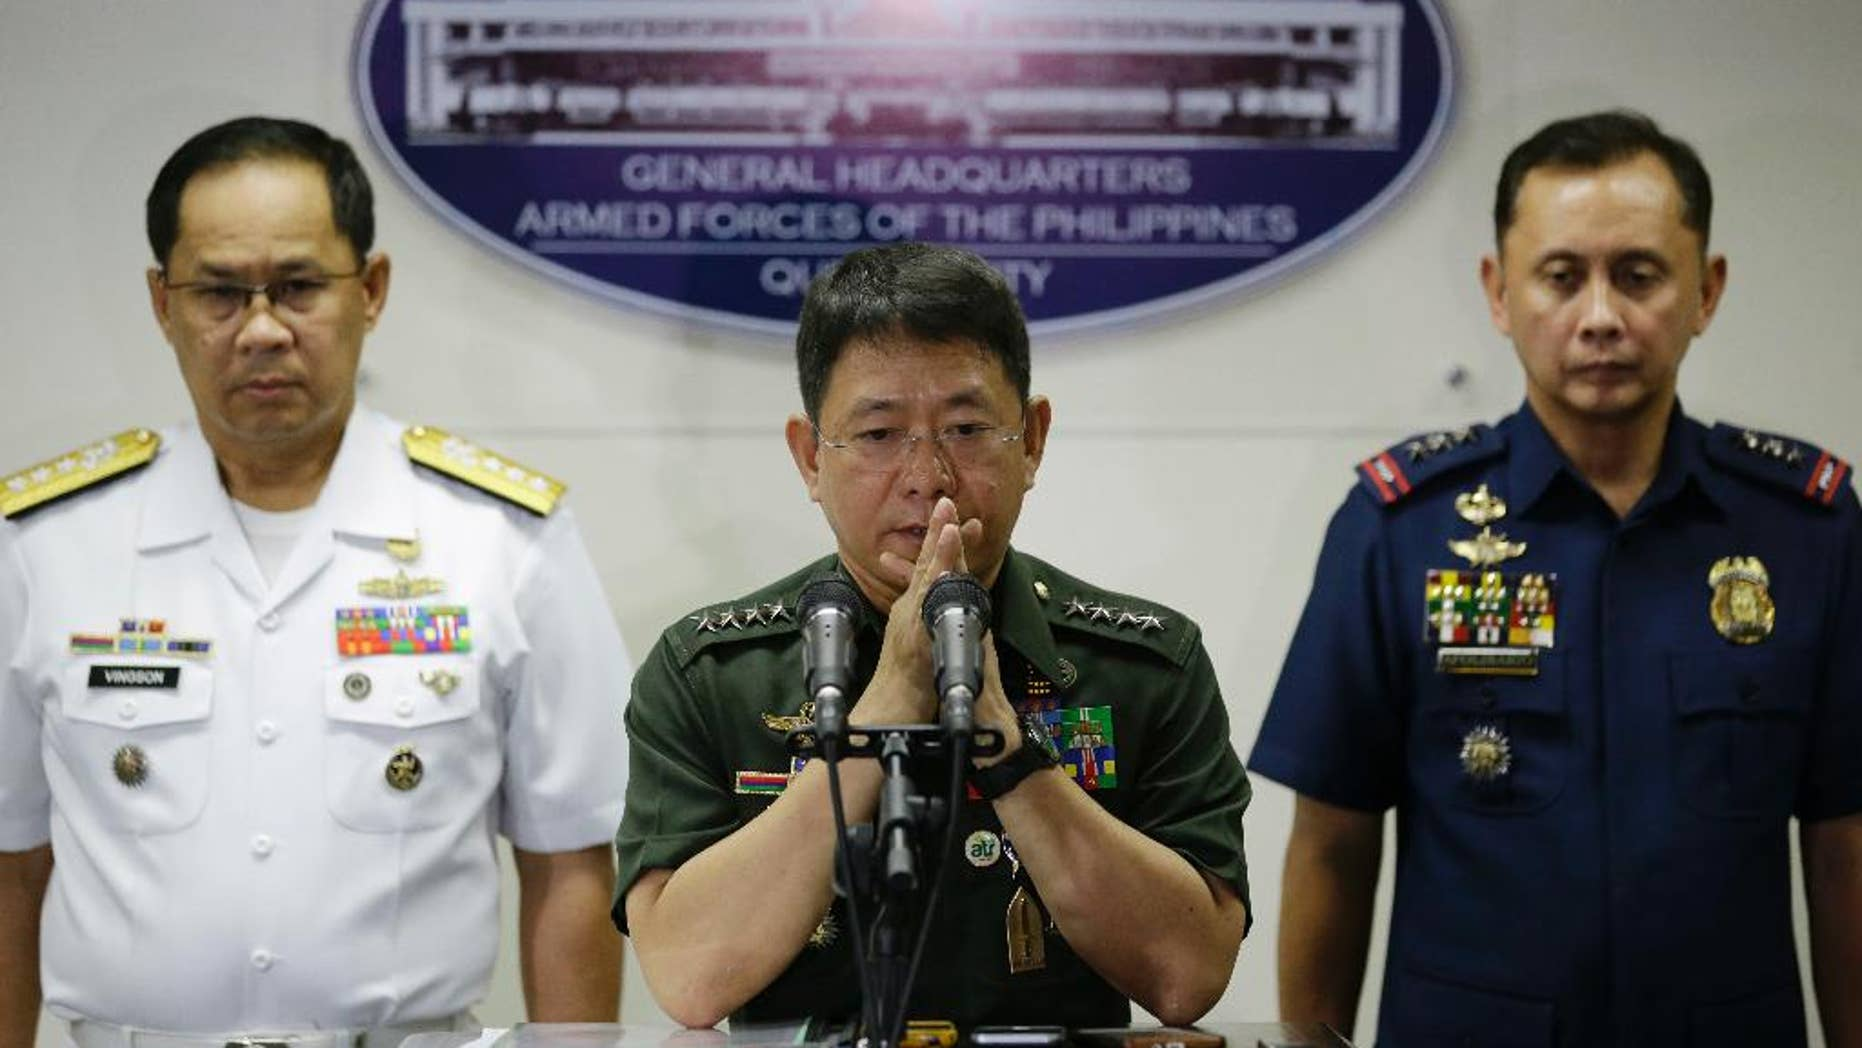 Philippine military chief of staff Gen. Eduardo Ano, center, gestures beside Philippine Navy Vice Adm. Narciso Vingson, left, and Philippine National Police Deputy Director for Administration Ramon Apolinario during a press conference at Camp Aguinaldo, the military headquarters in Quezon city, north of Manila, Philippines, Wednesday, April 12, 2017. Philippine troops battling militants in a central province killed a key Abu Sayyaf commander who had been blamed for the beheadings of two Canadians and a German hostage and was apparently attempting another kidnapping mission, Ano said Wednesday. (AP Photo/Aaron Favila)